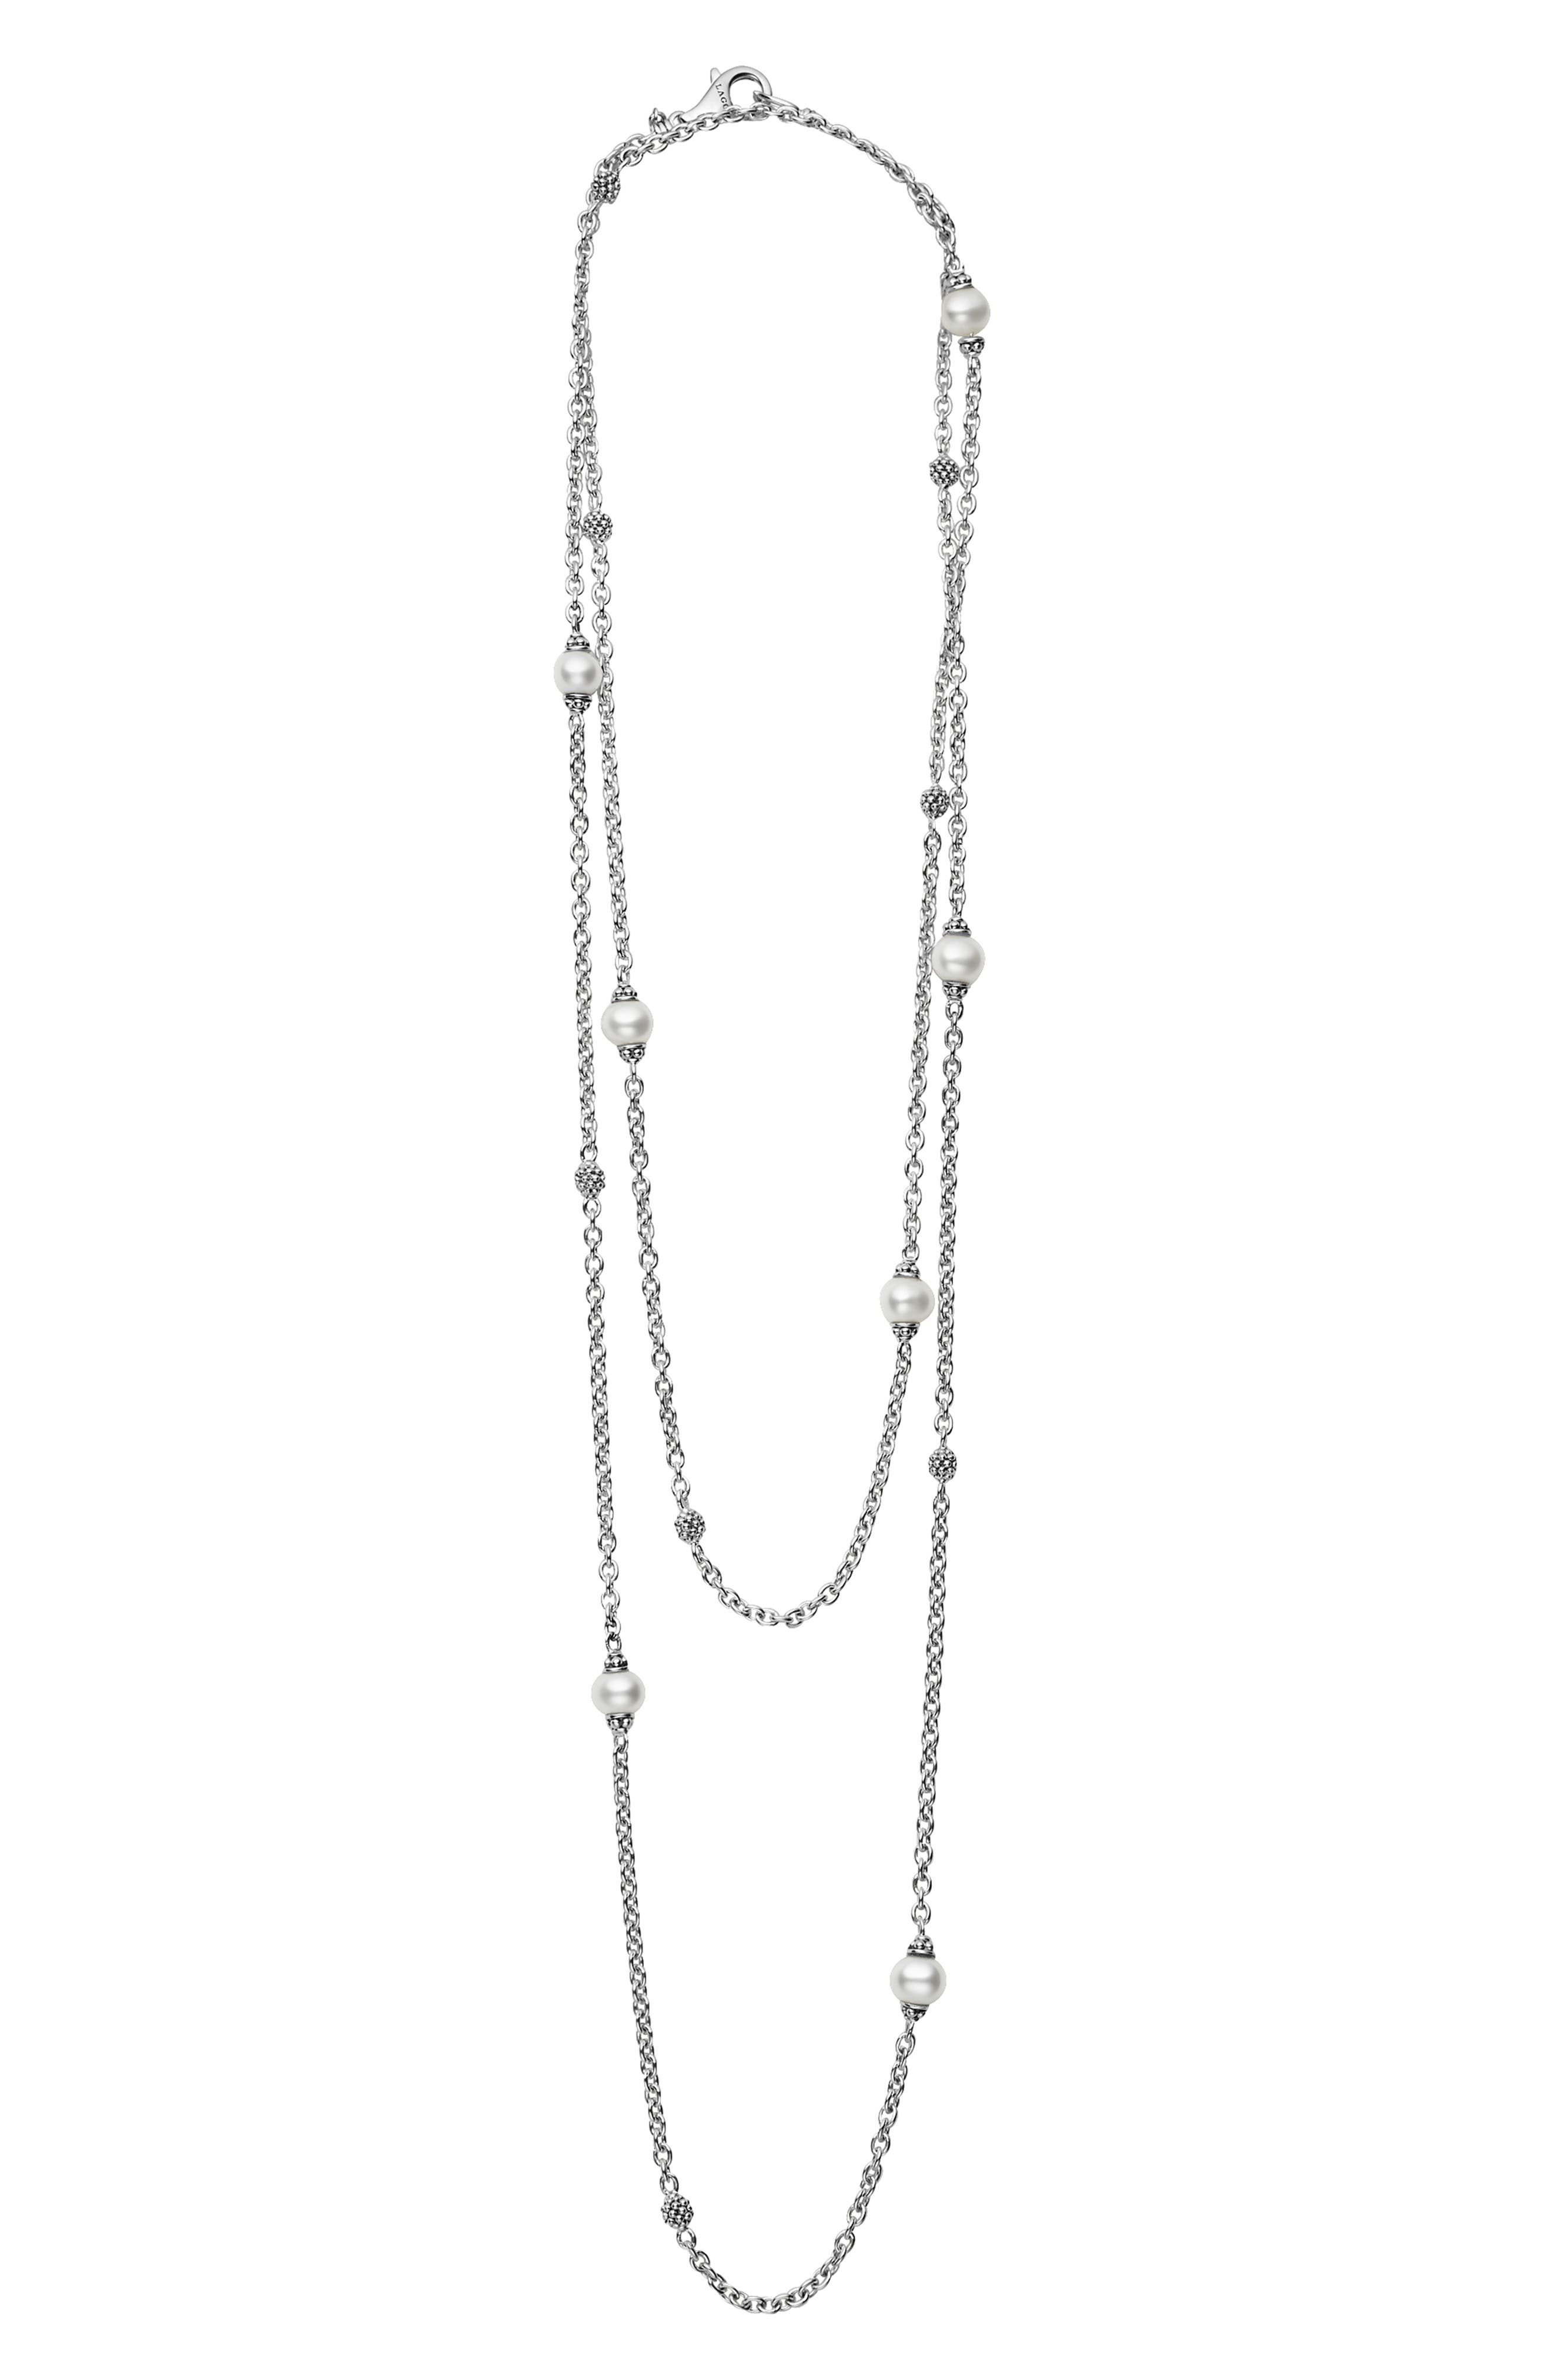 LAGOS 'Luna' Double Strand Pearl Station Necklace, Main, color, SILVER/ PEARL